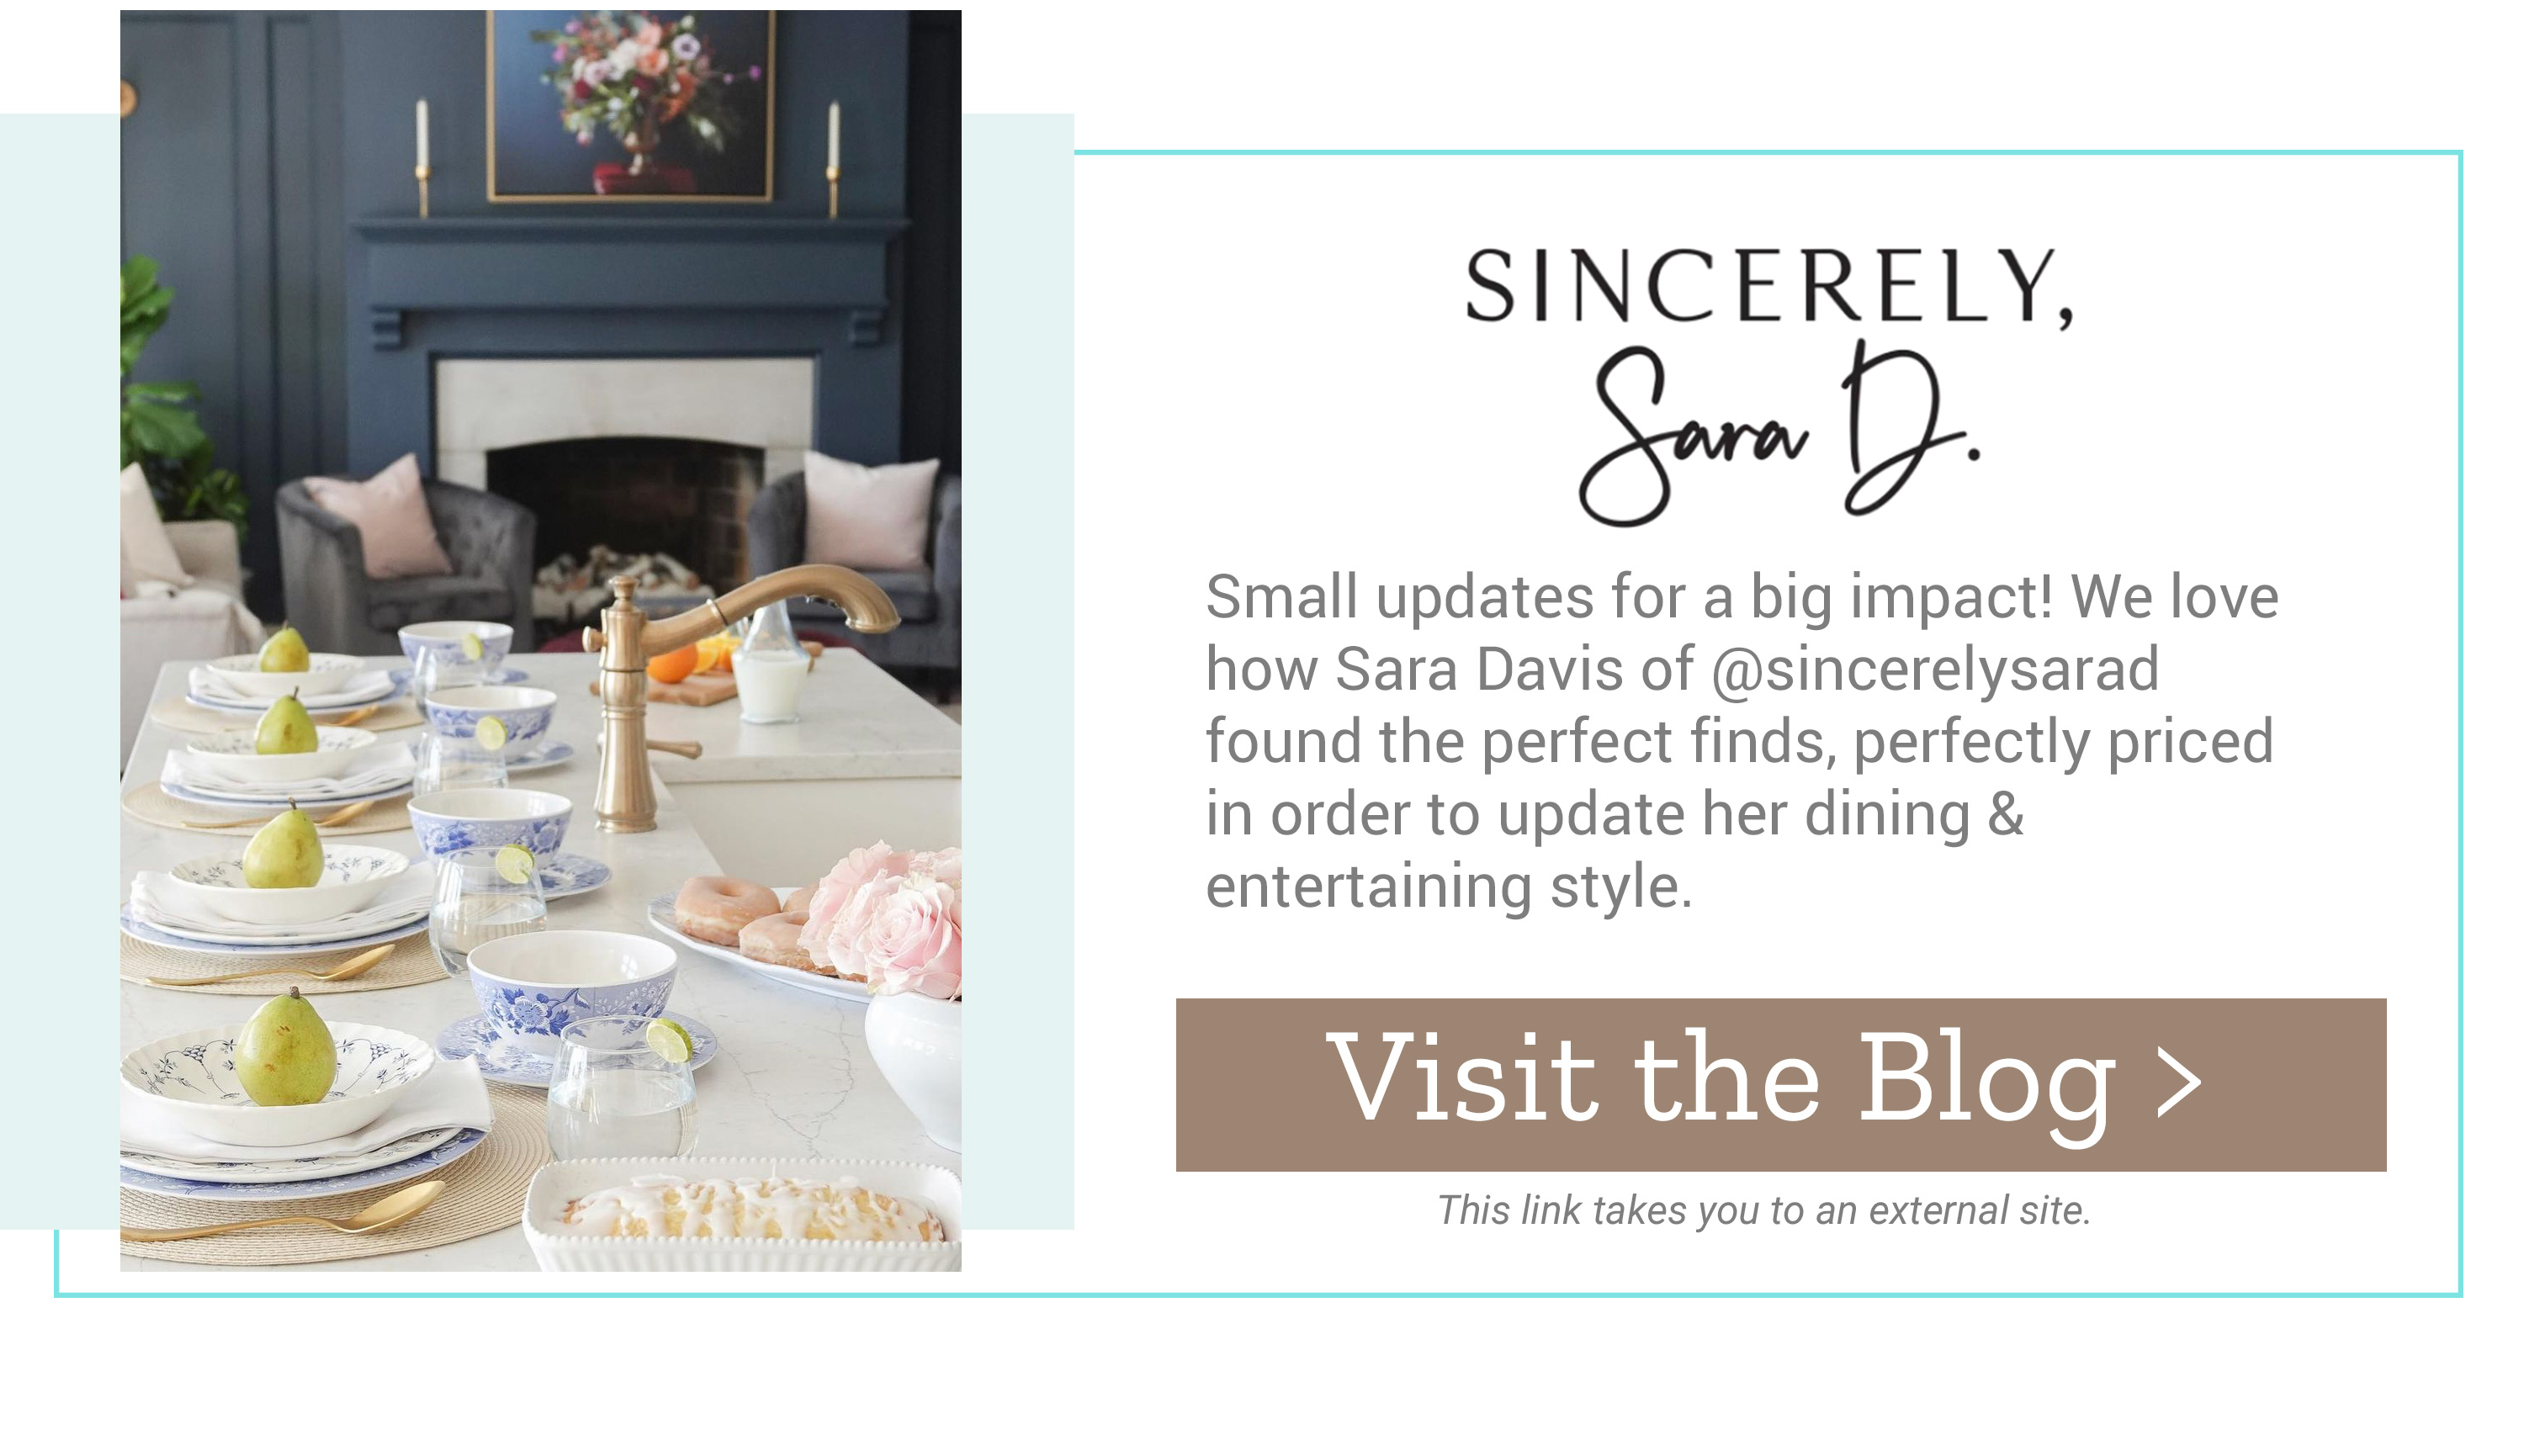 Sincerely SaraD - Small updates for a big impact! Visit the Blog >